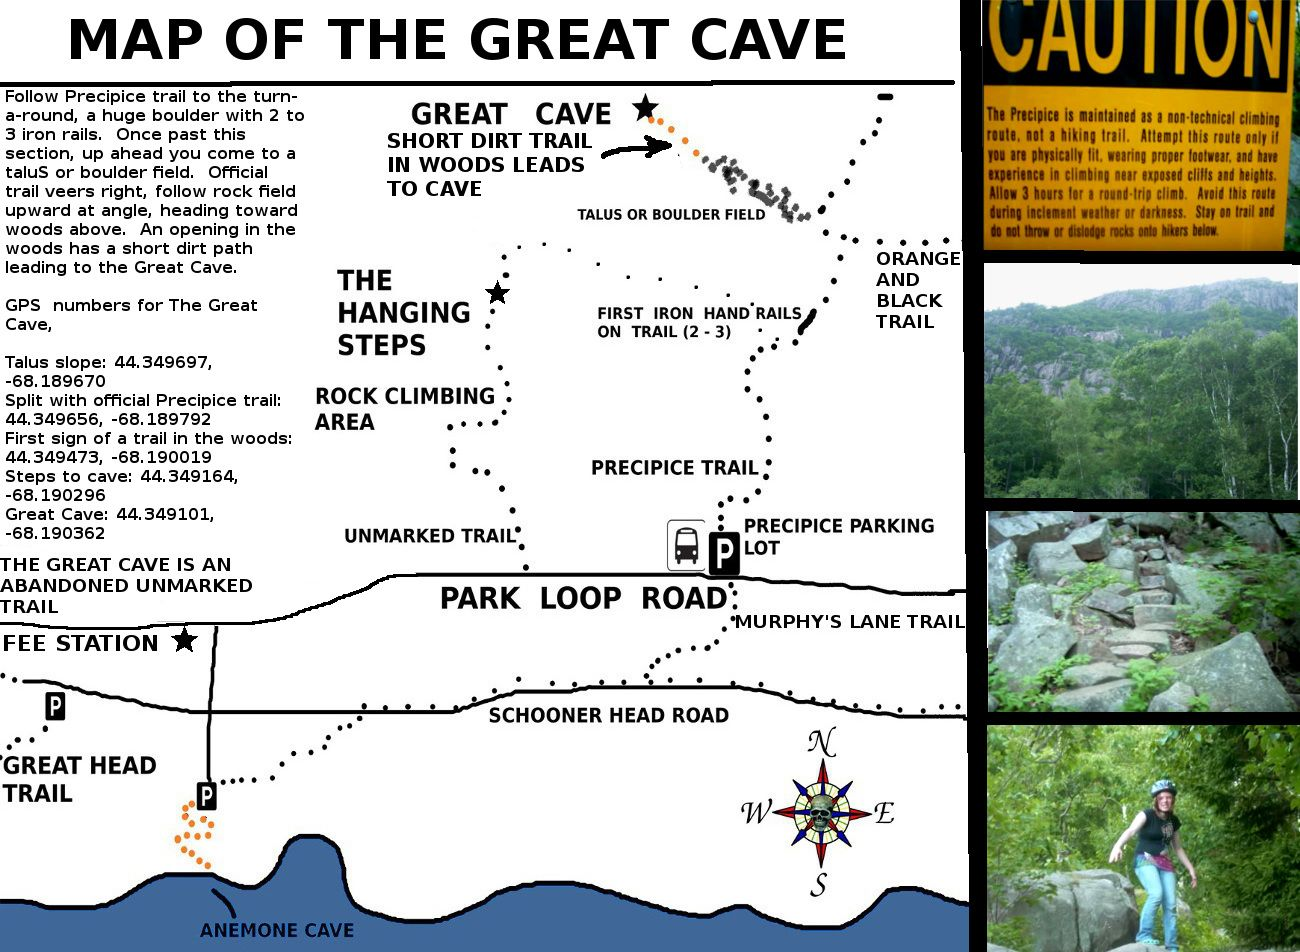 The Great Cave phantom trail - Acadia National Park. An unmarked ...